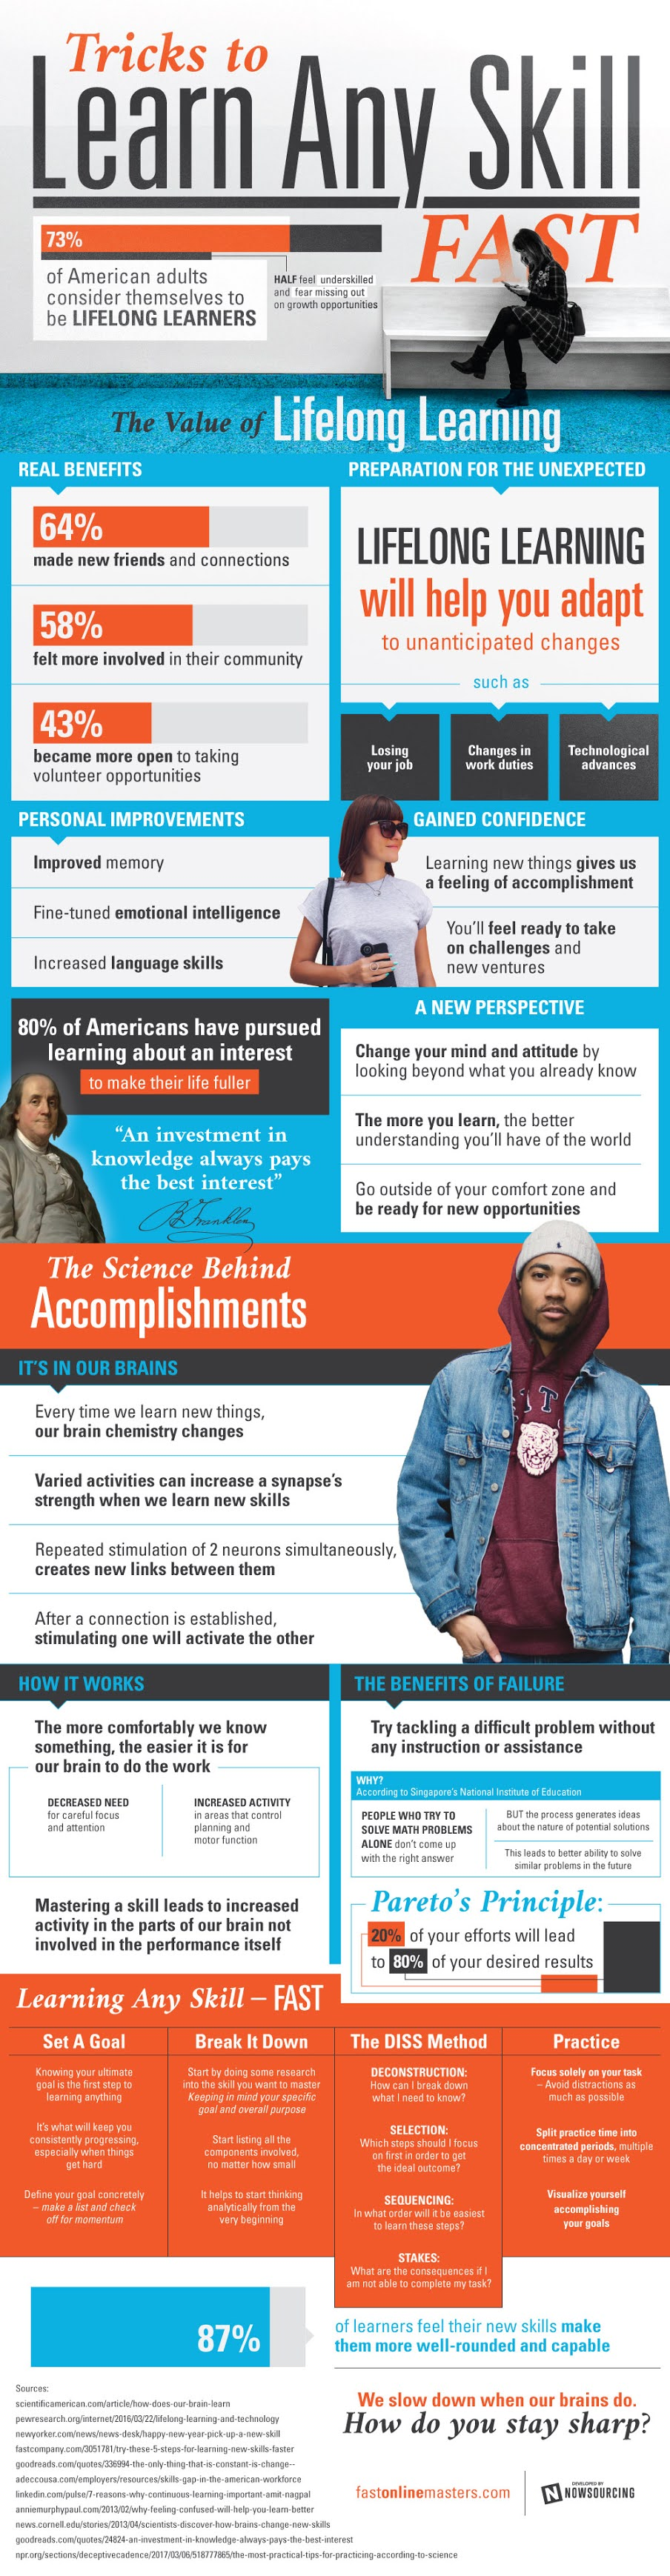 Tricks To Learn Any Skill Fast #infographic